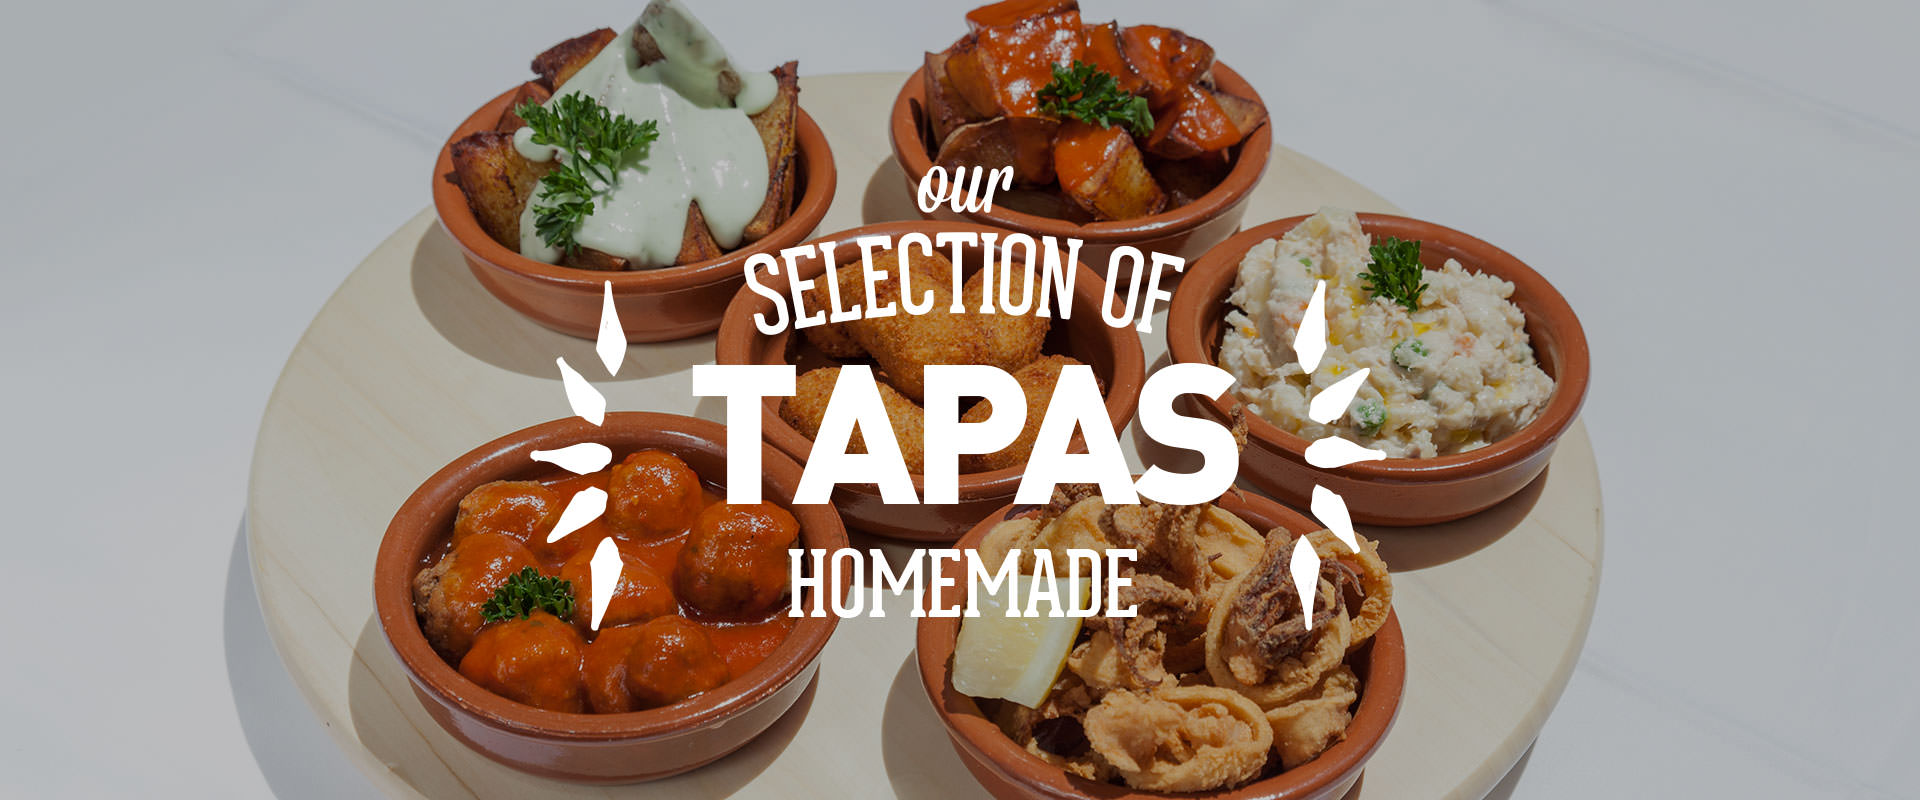 selection-tapas-pollensa